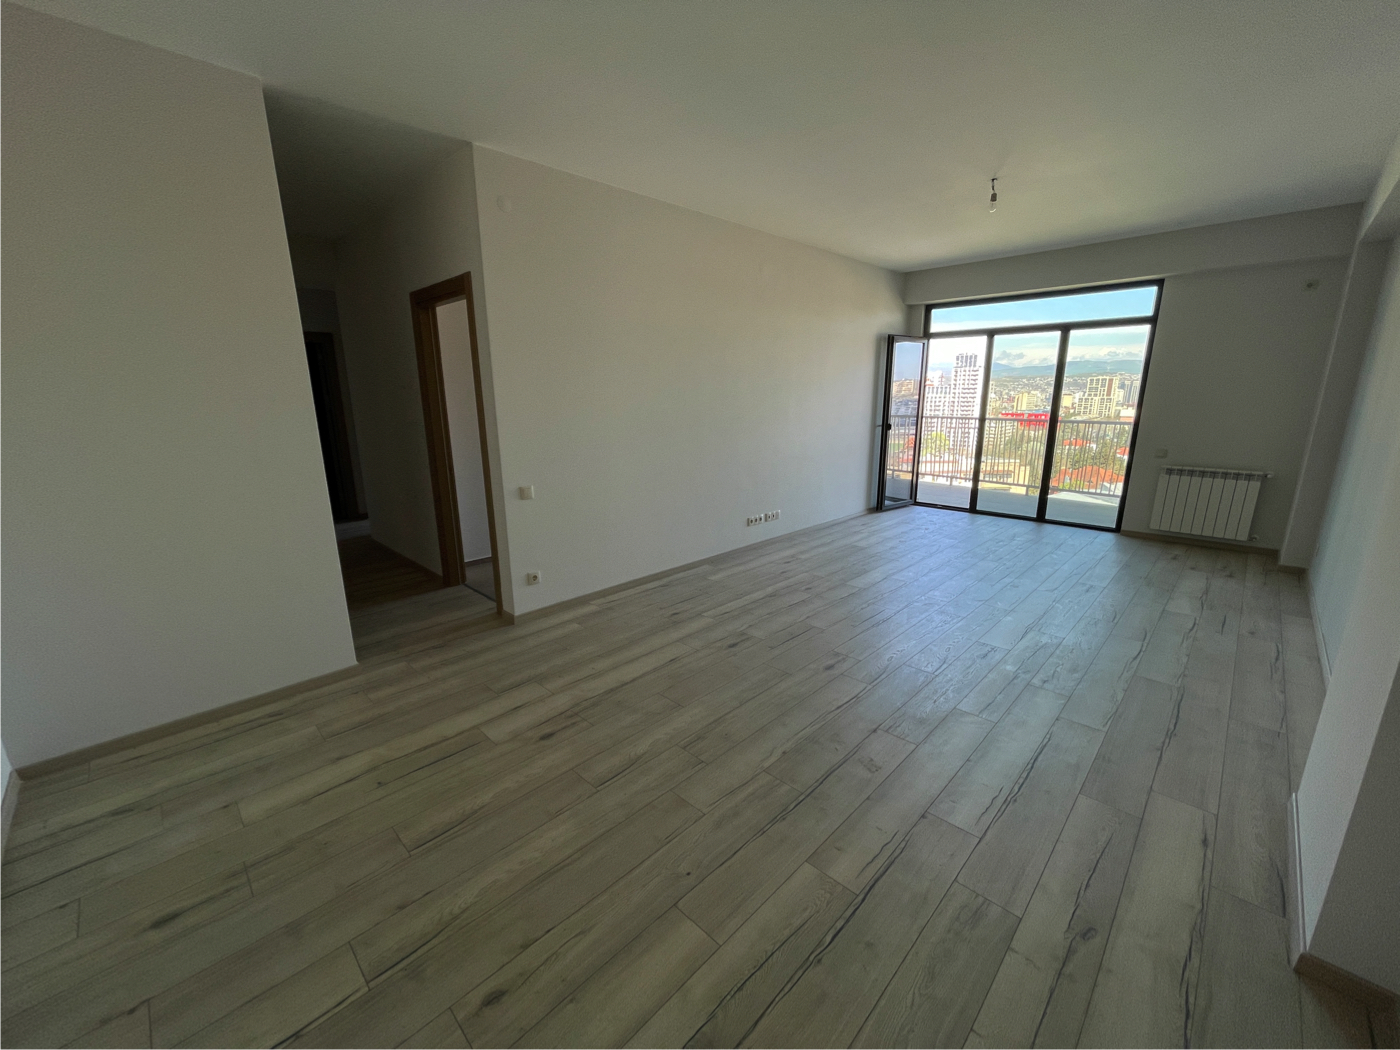 """4-Room Apartment For Rent at """"m2 on Hippodrome 2"""""""